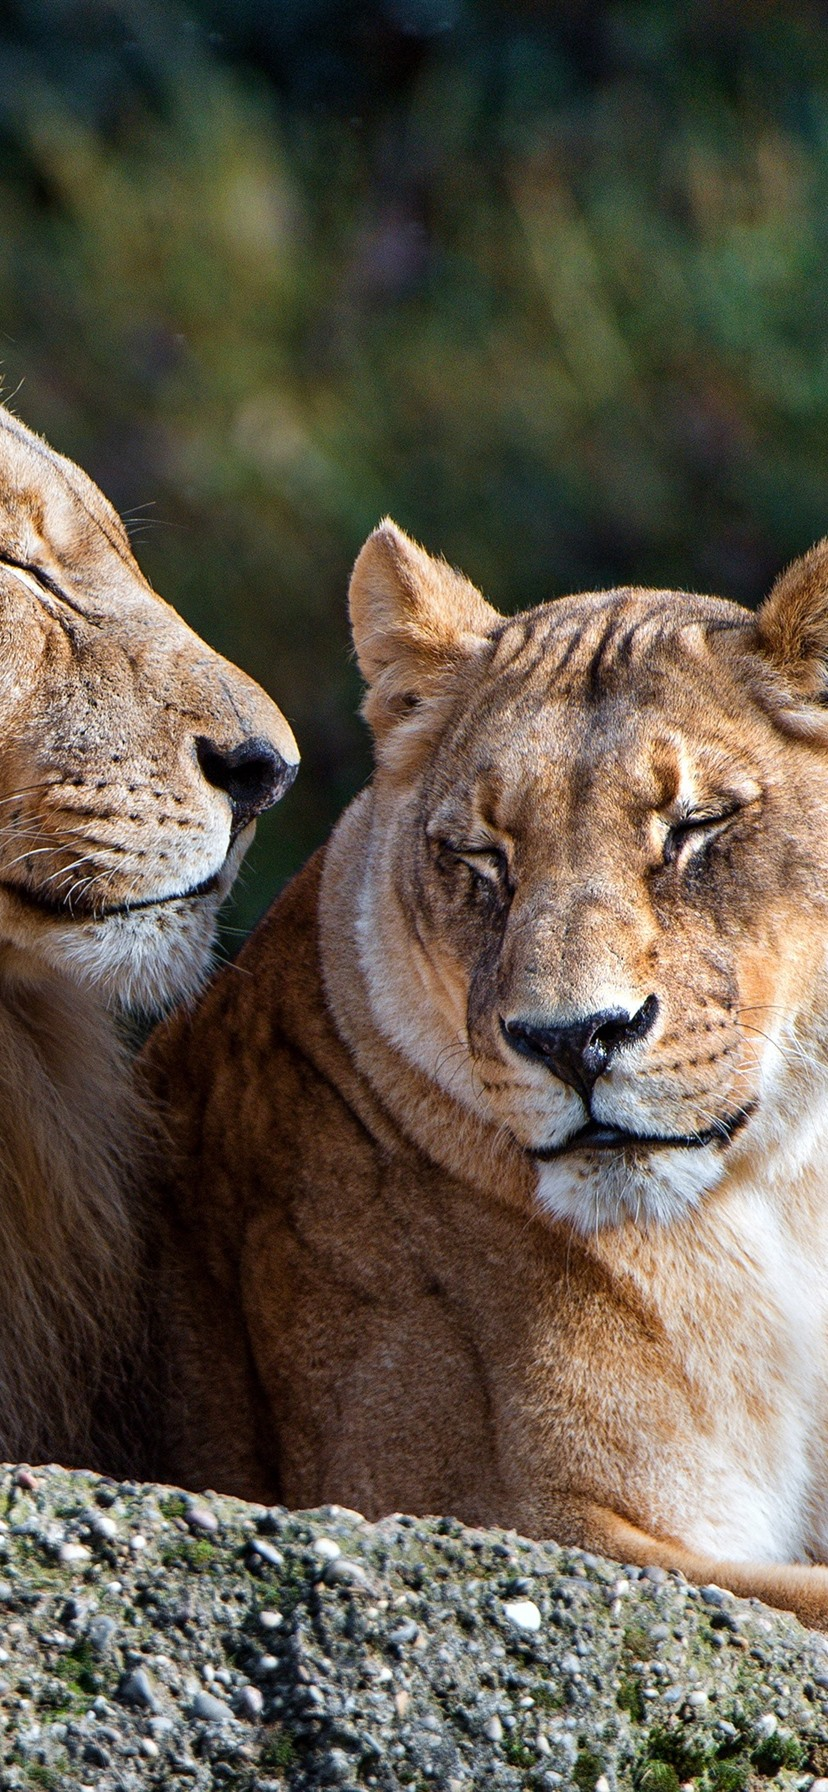 Wallpaper Lion And Lioness Rest Couple 3840x2160 Uhd 4k Picture Image